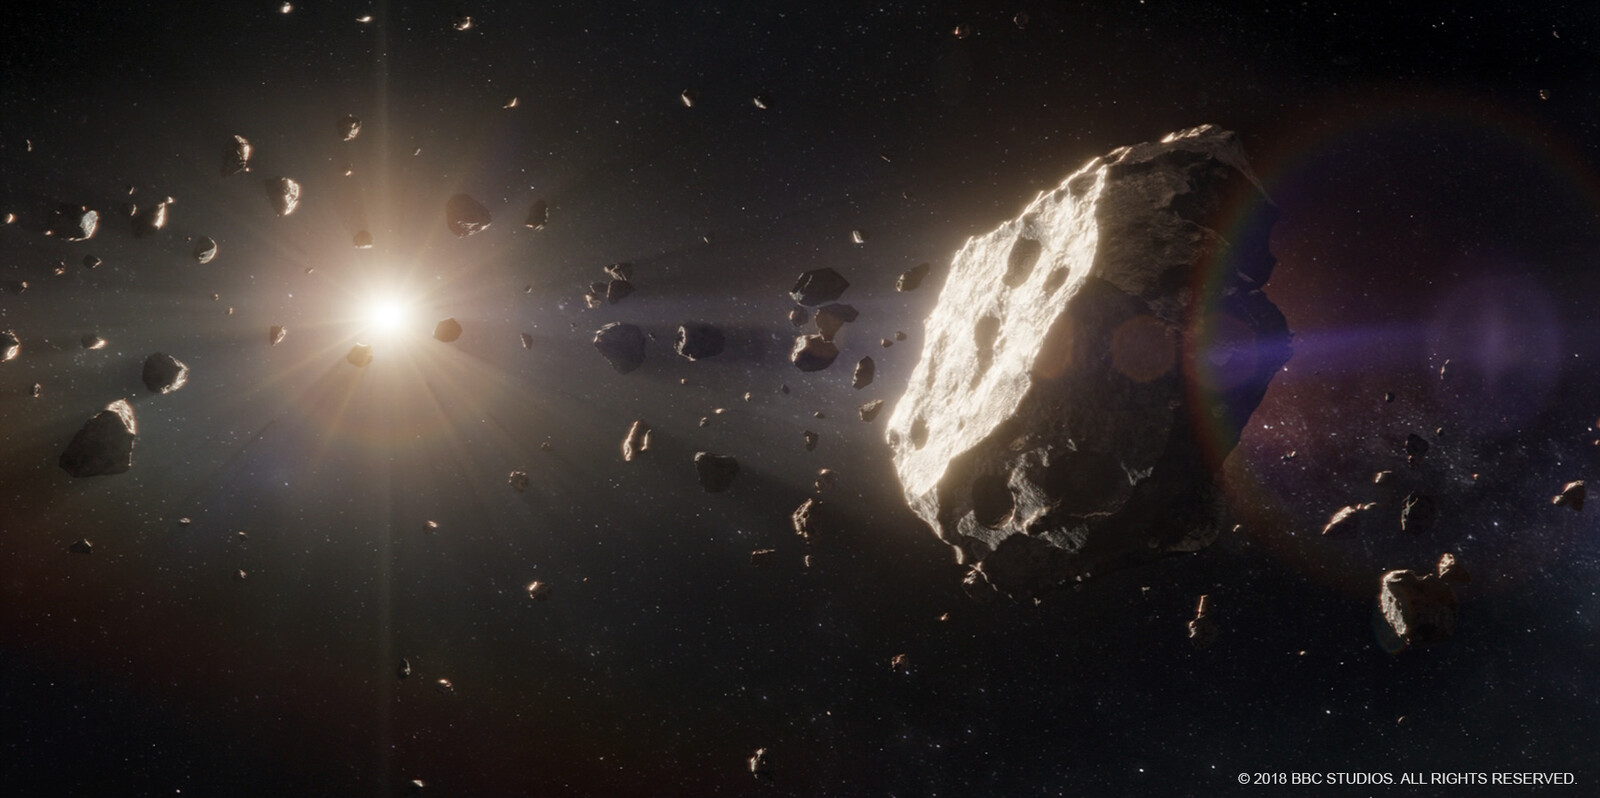 Asteroid field - shot layout and lighting